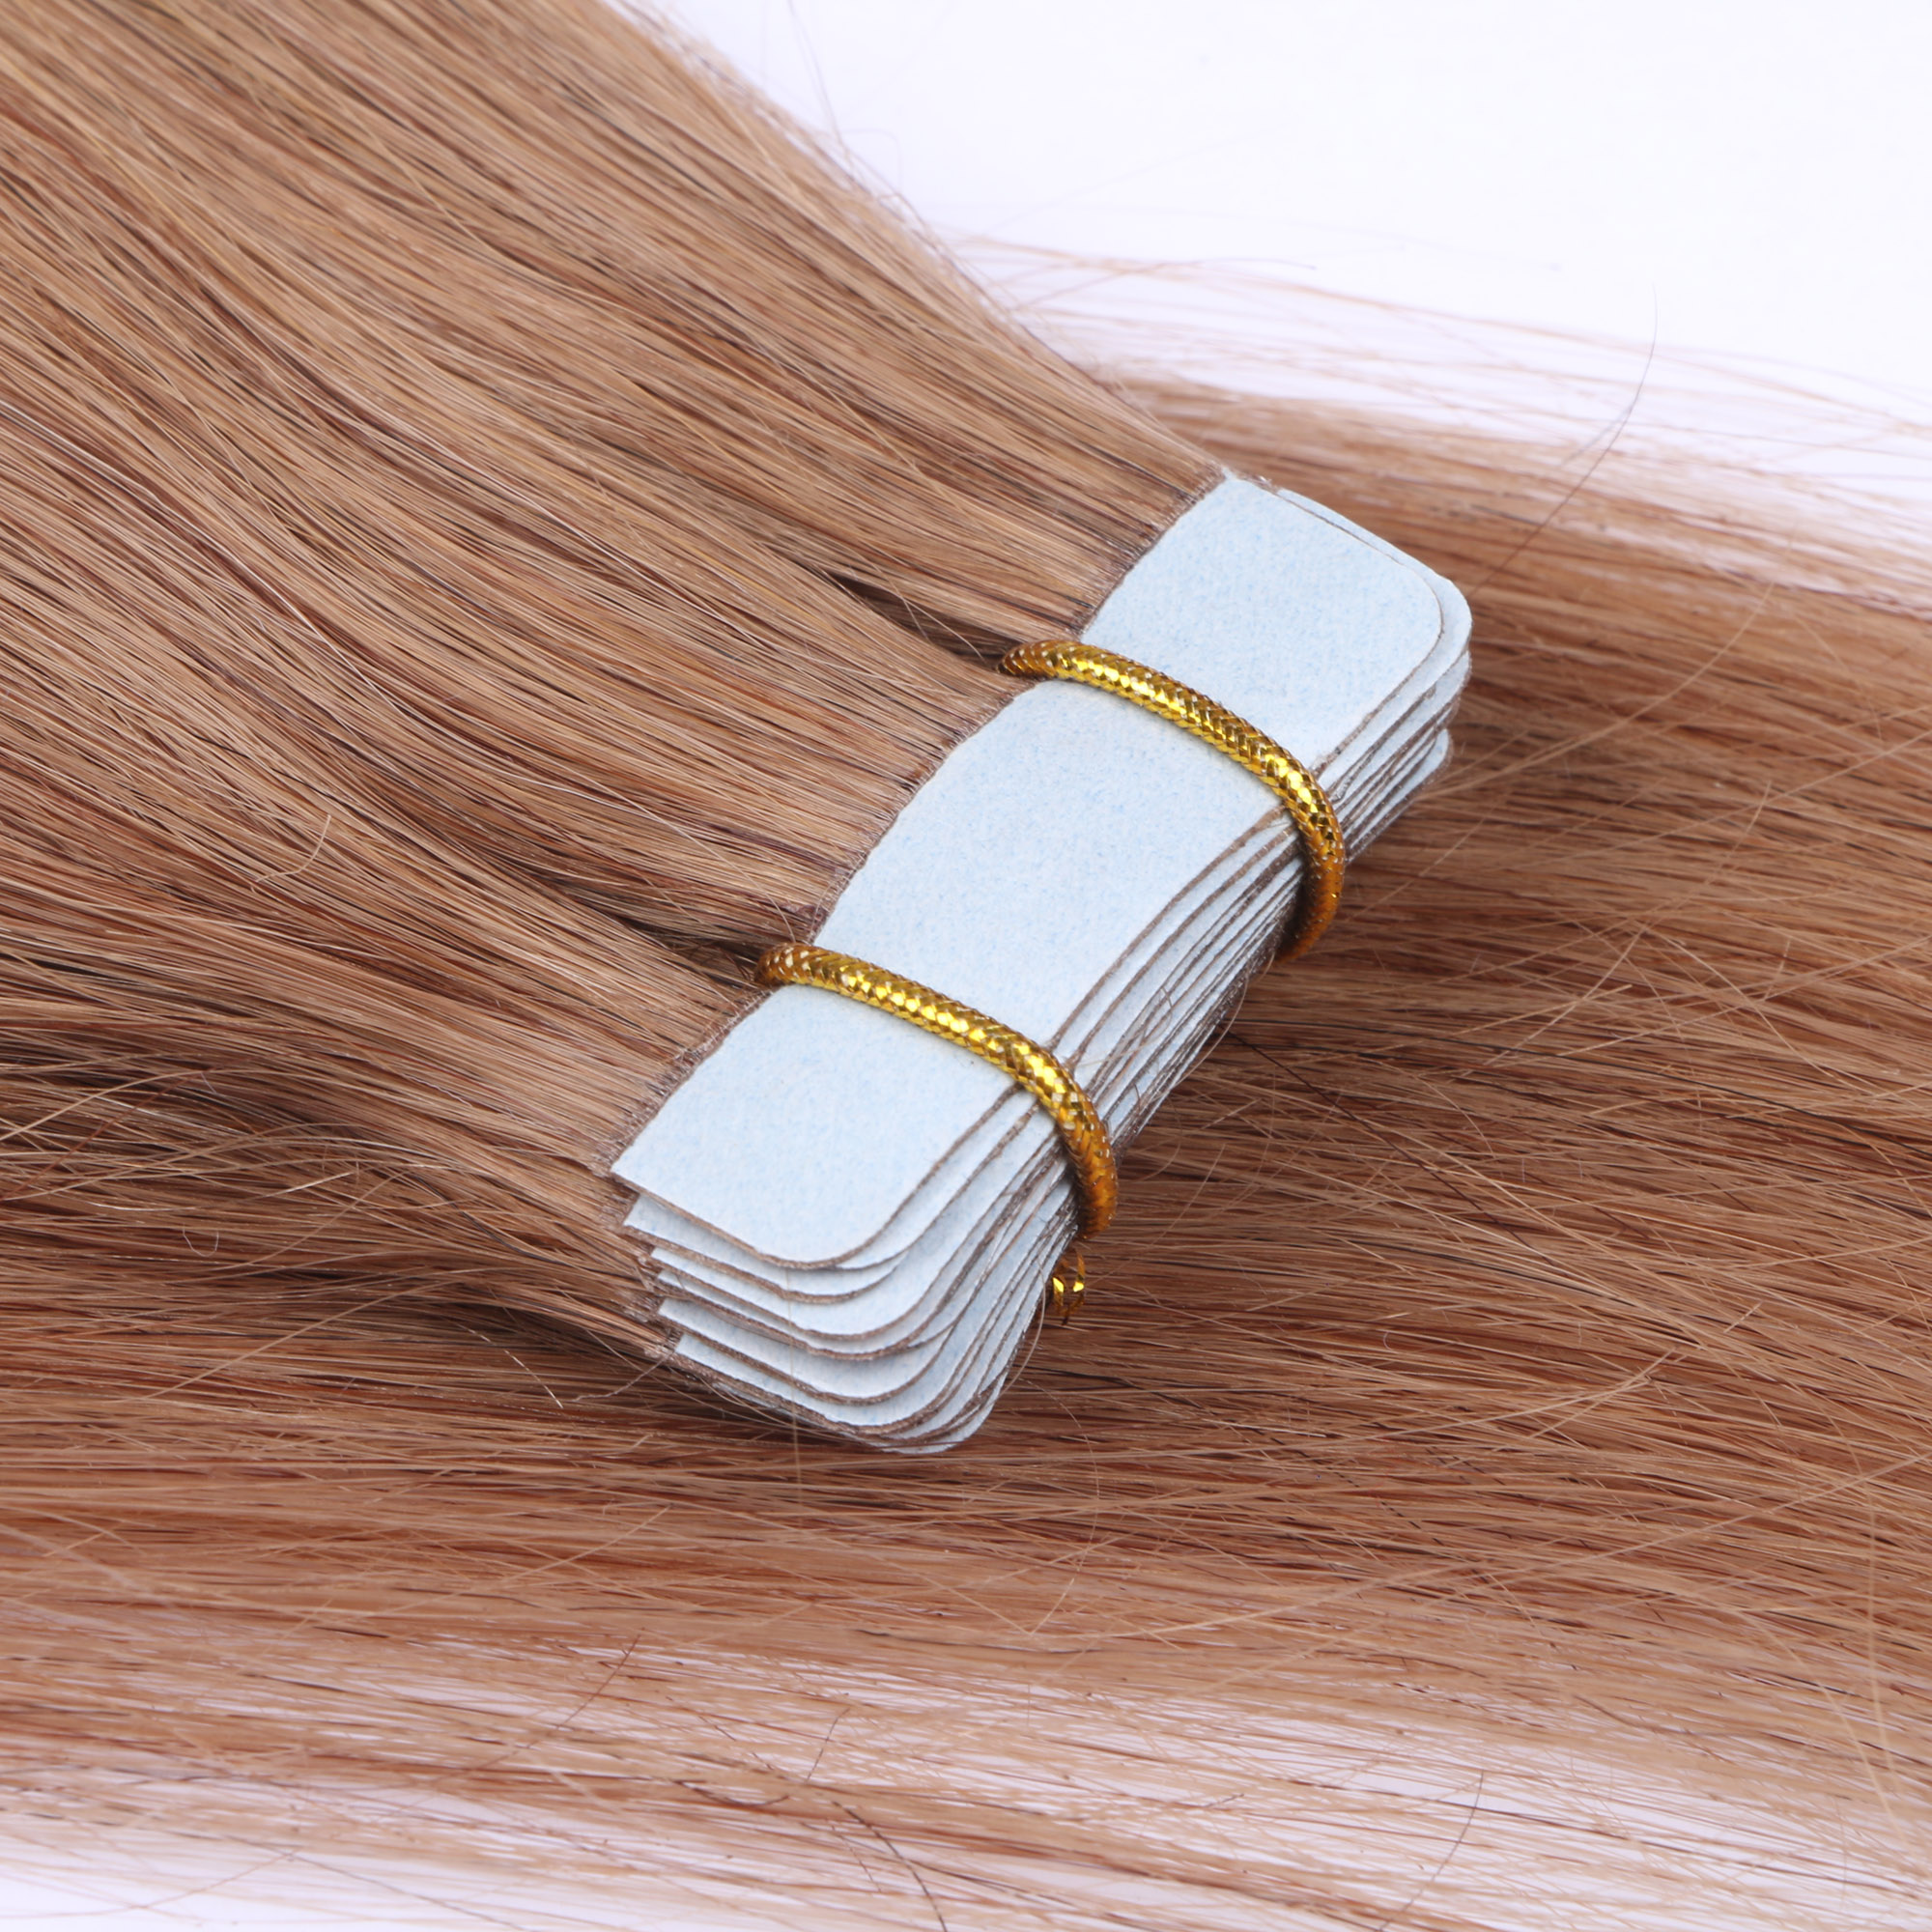 Can you use normal double sided tape for hair extensions